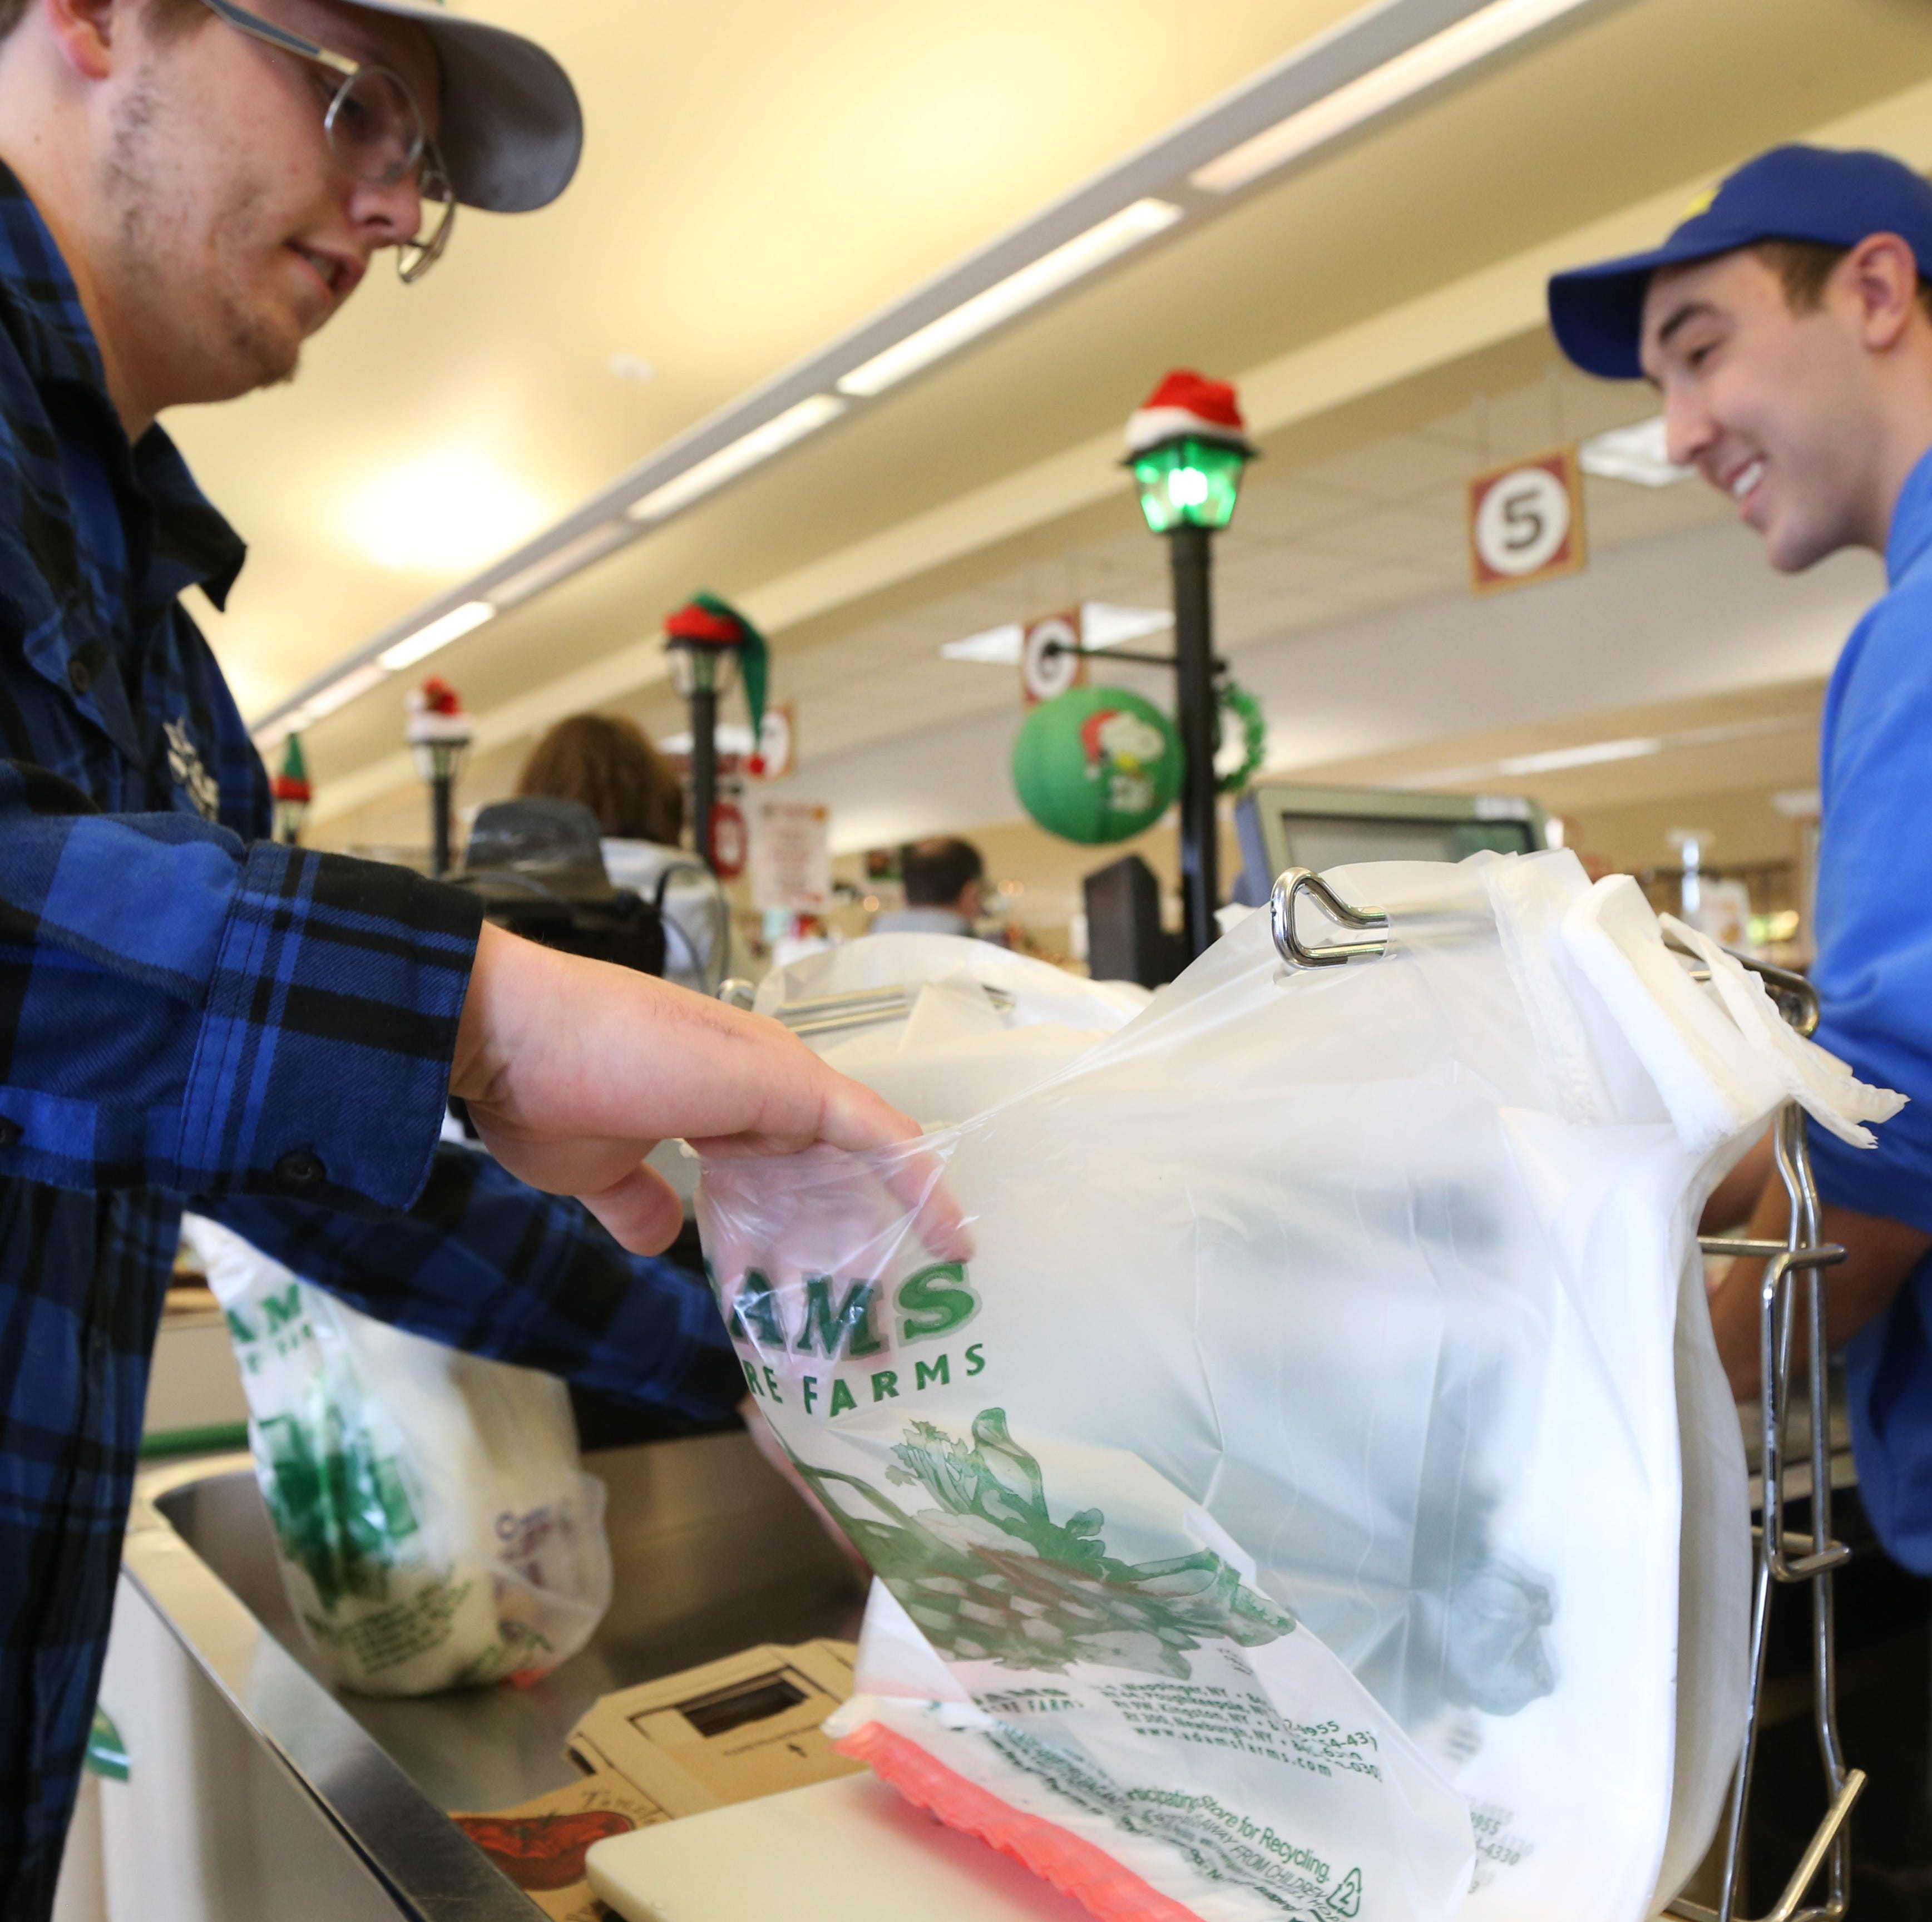 From left, front end supervisor Brian Owen and cashier Ricky Fusaro bag a customer's groceries at Adams Fairacre Farms in the Town of Wappinger on December 7, 2018.